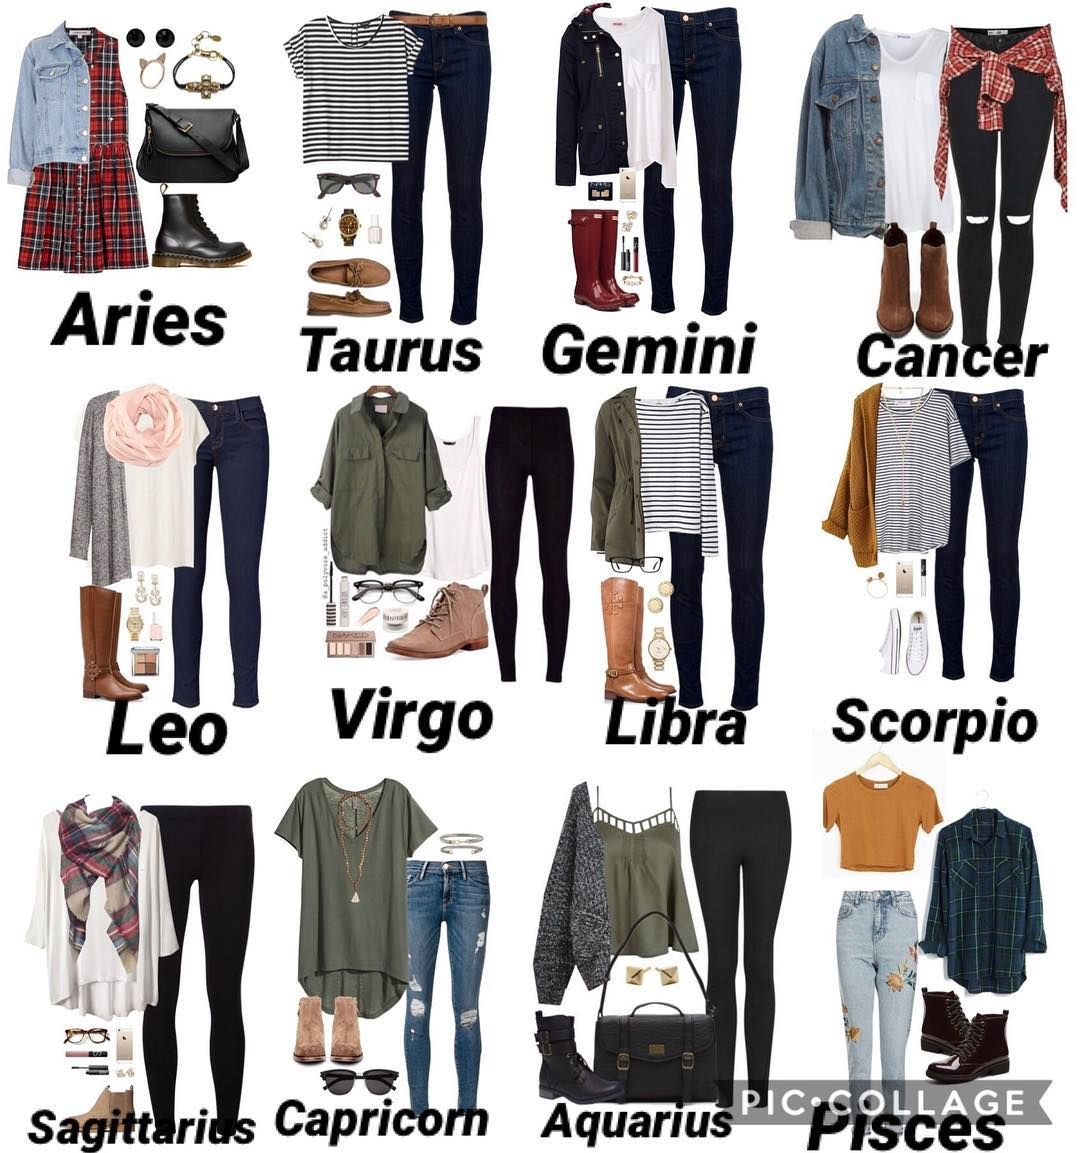 "ッZødiac.aesthetics_ッ on Instagram: ""The signs hipster outfits"